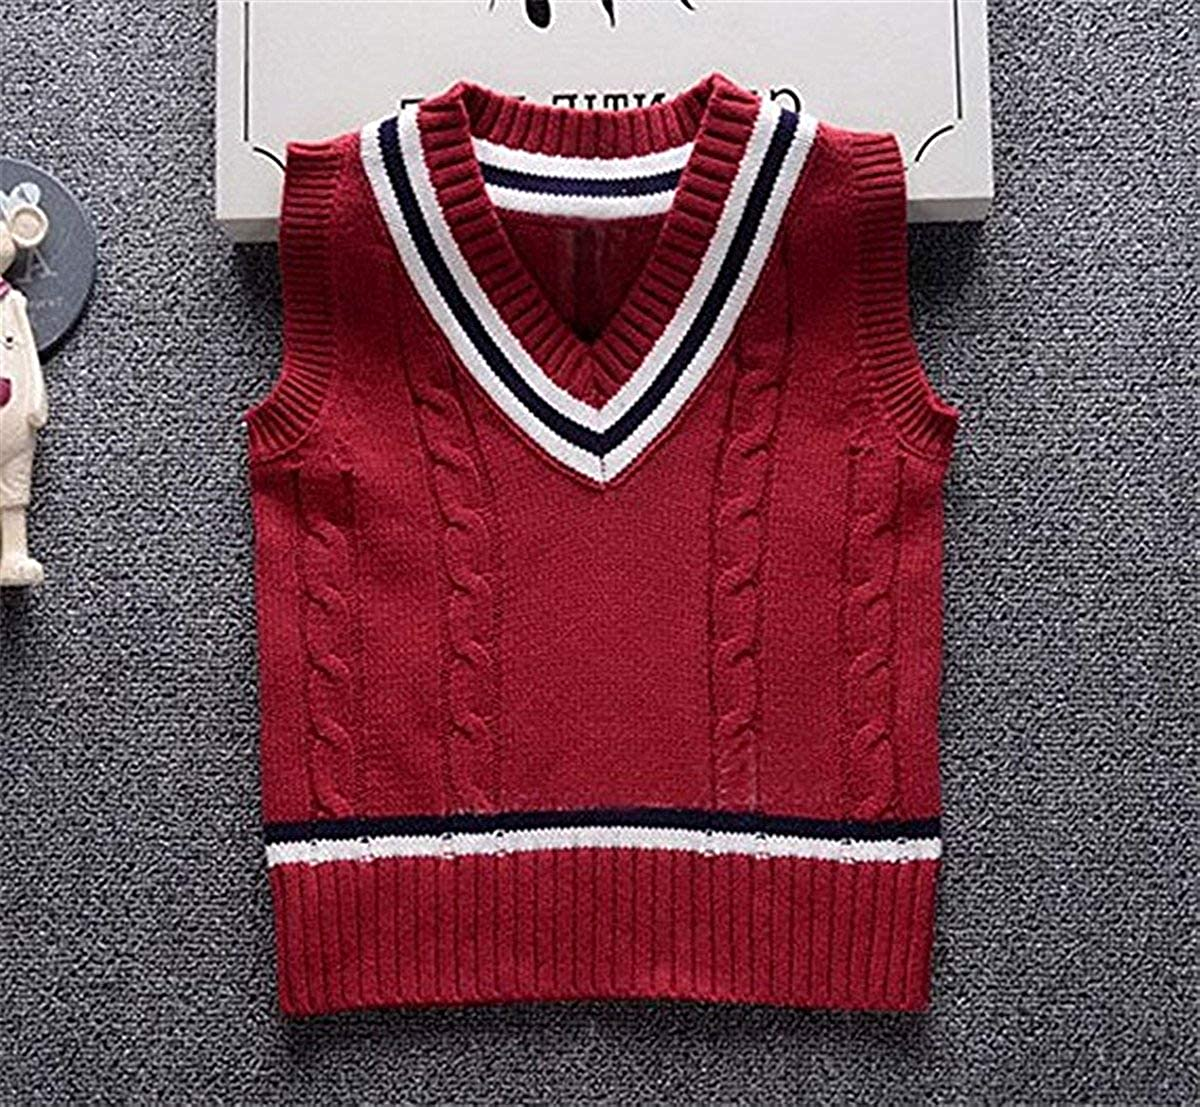 SUNNY Store Baby Boys Toddler V-Neck Solid Color Cable Knit Pullover Sweater Vest